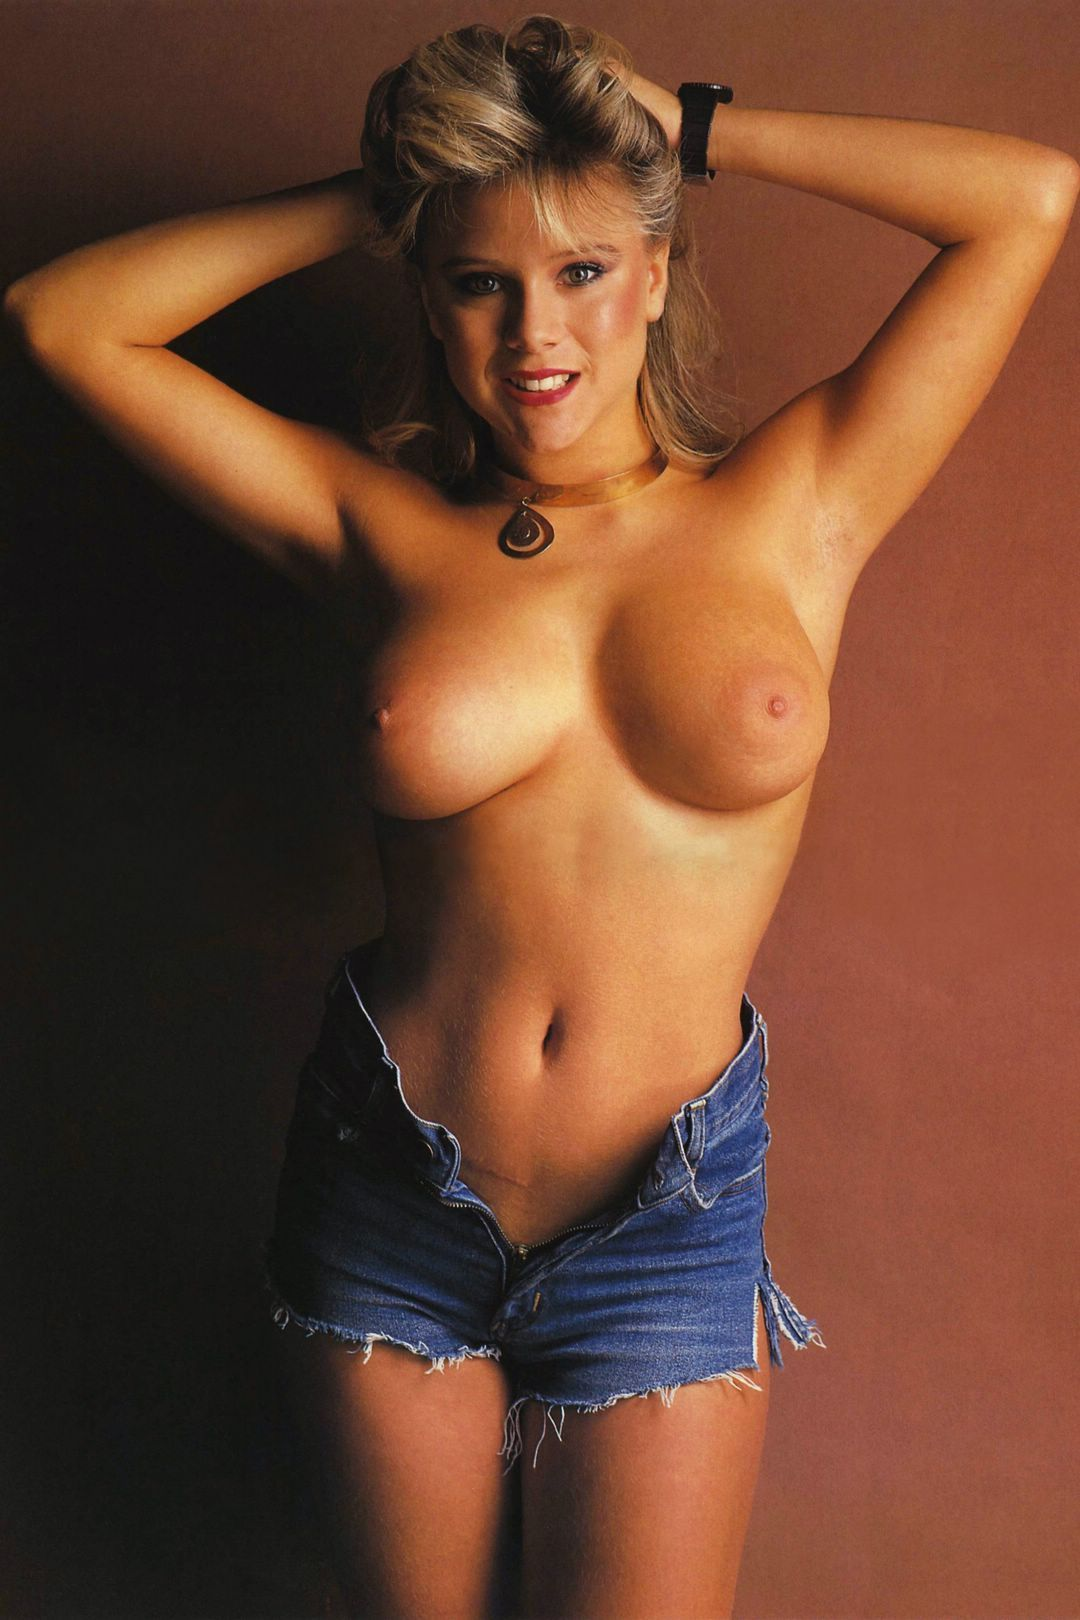 samantha fox topless poster Nude